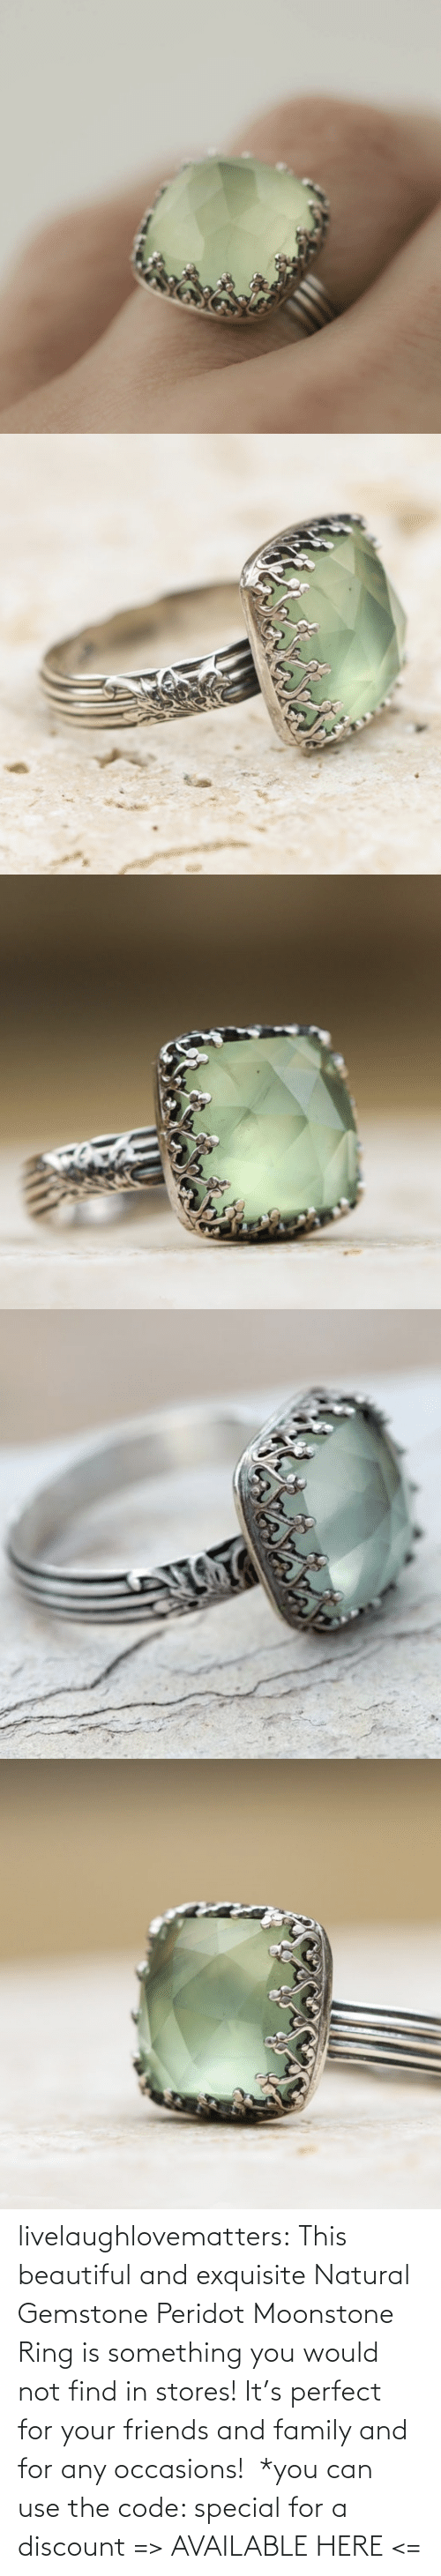 Gemstone: livelaughlovematters: This beautiful and exquisite Natural Gemstone Peridot Moonstone Ring is something you would not find in stores! It's perfect for your friends and family and for any occasions!  *you can use the code: special for a discount => AVAILABLE HERE <=